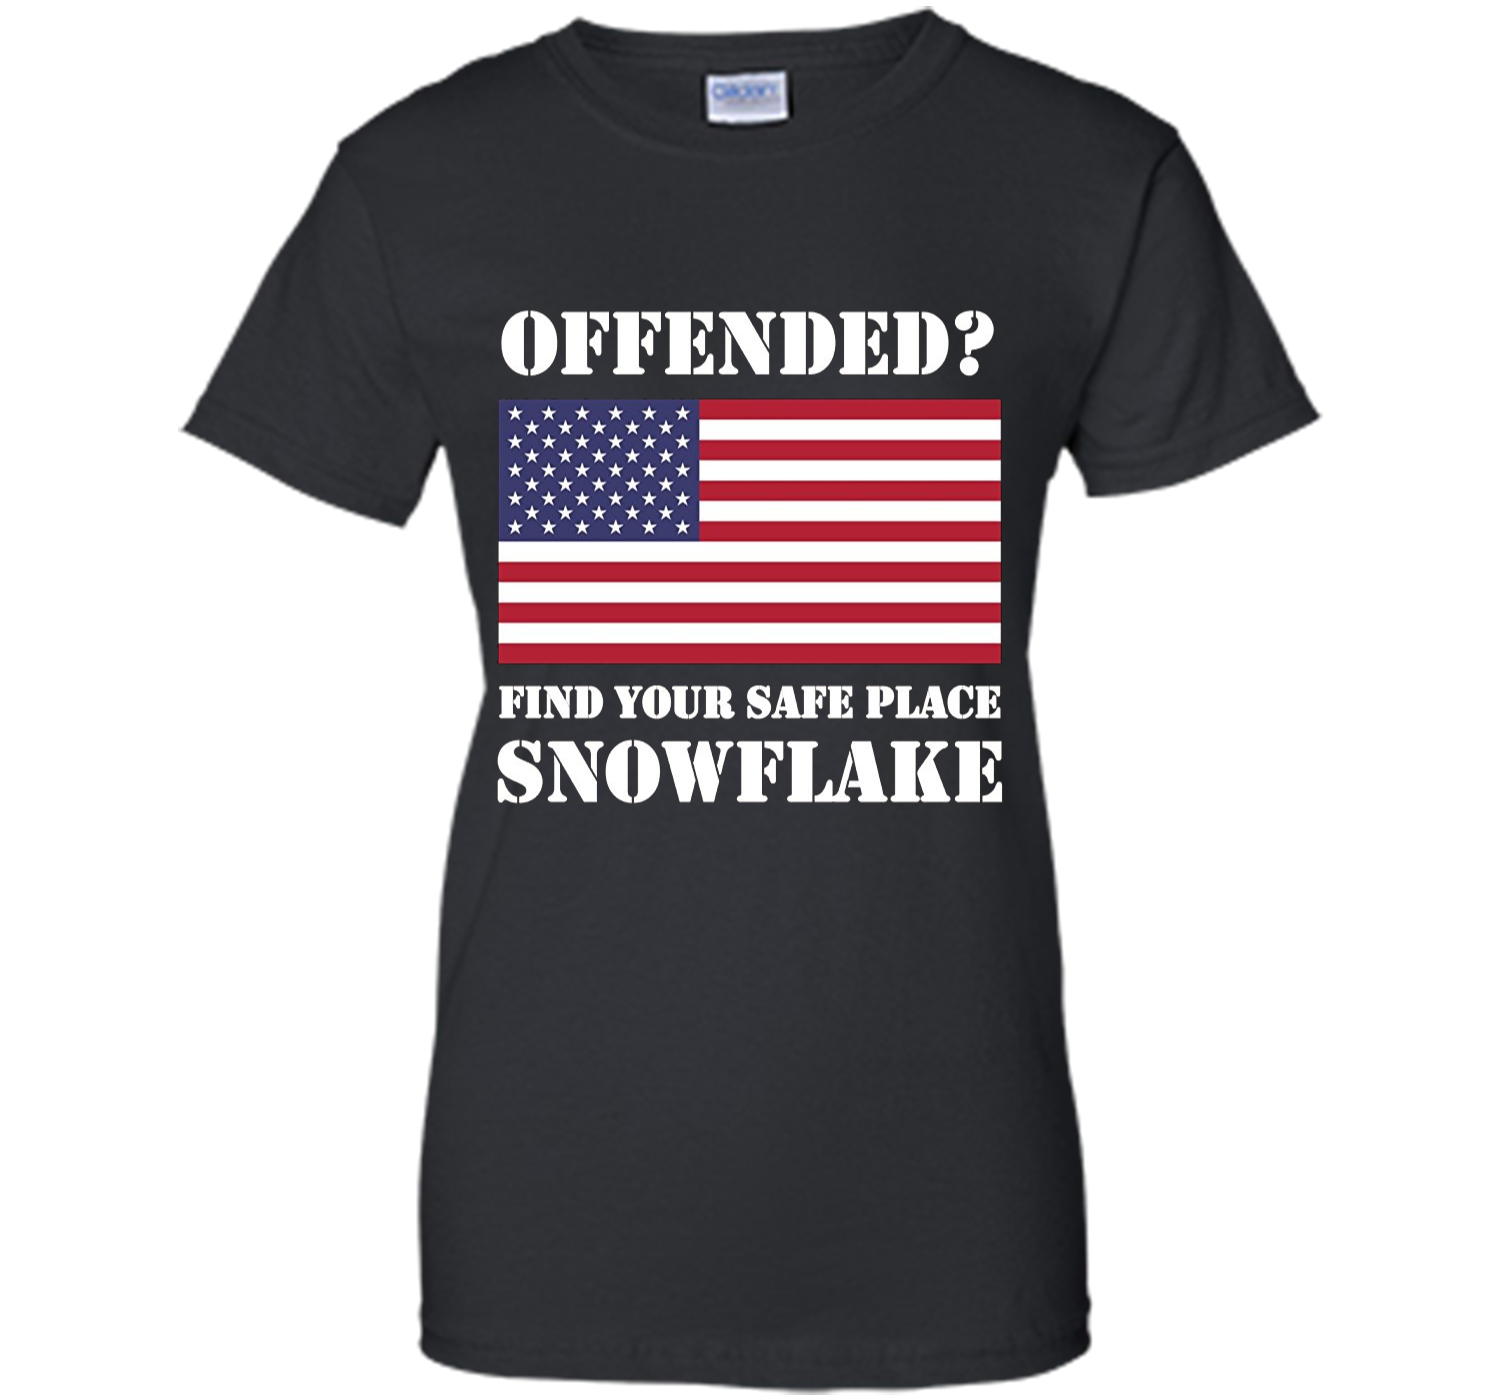 Find Your Safe Space Snowflake T Shirt Pro Trump Tee Shirt Ladies